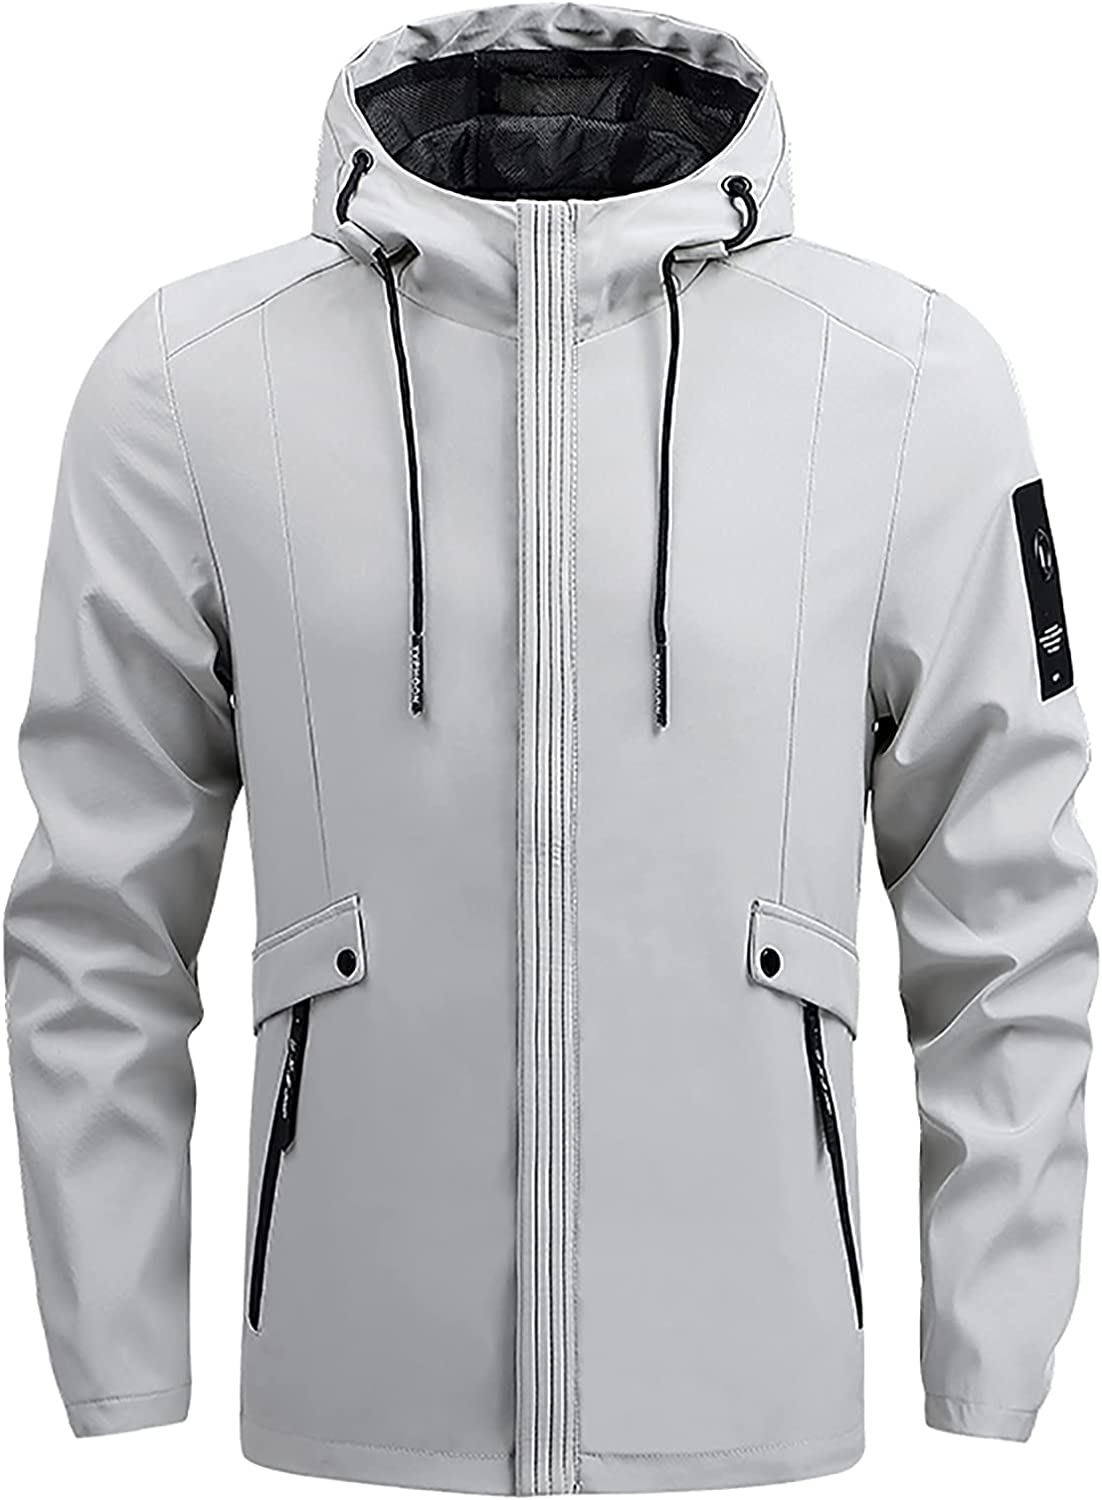 Men's Solid Color Full Zipper Multi-Pocket Hoodie Casual Slim Fit Windproof Warm Jacket Fashion Trend Outerwear